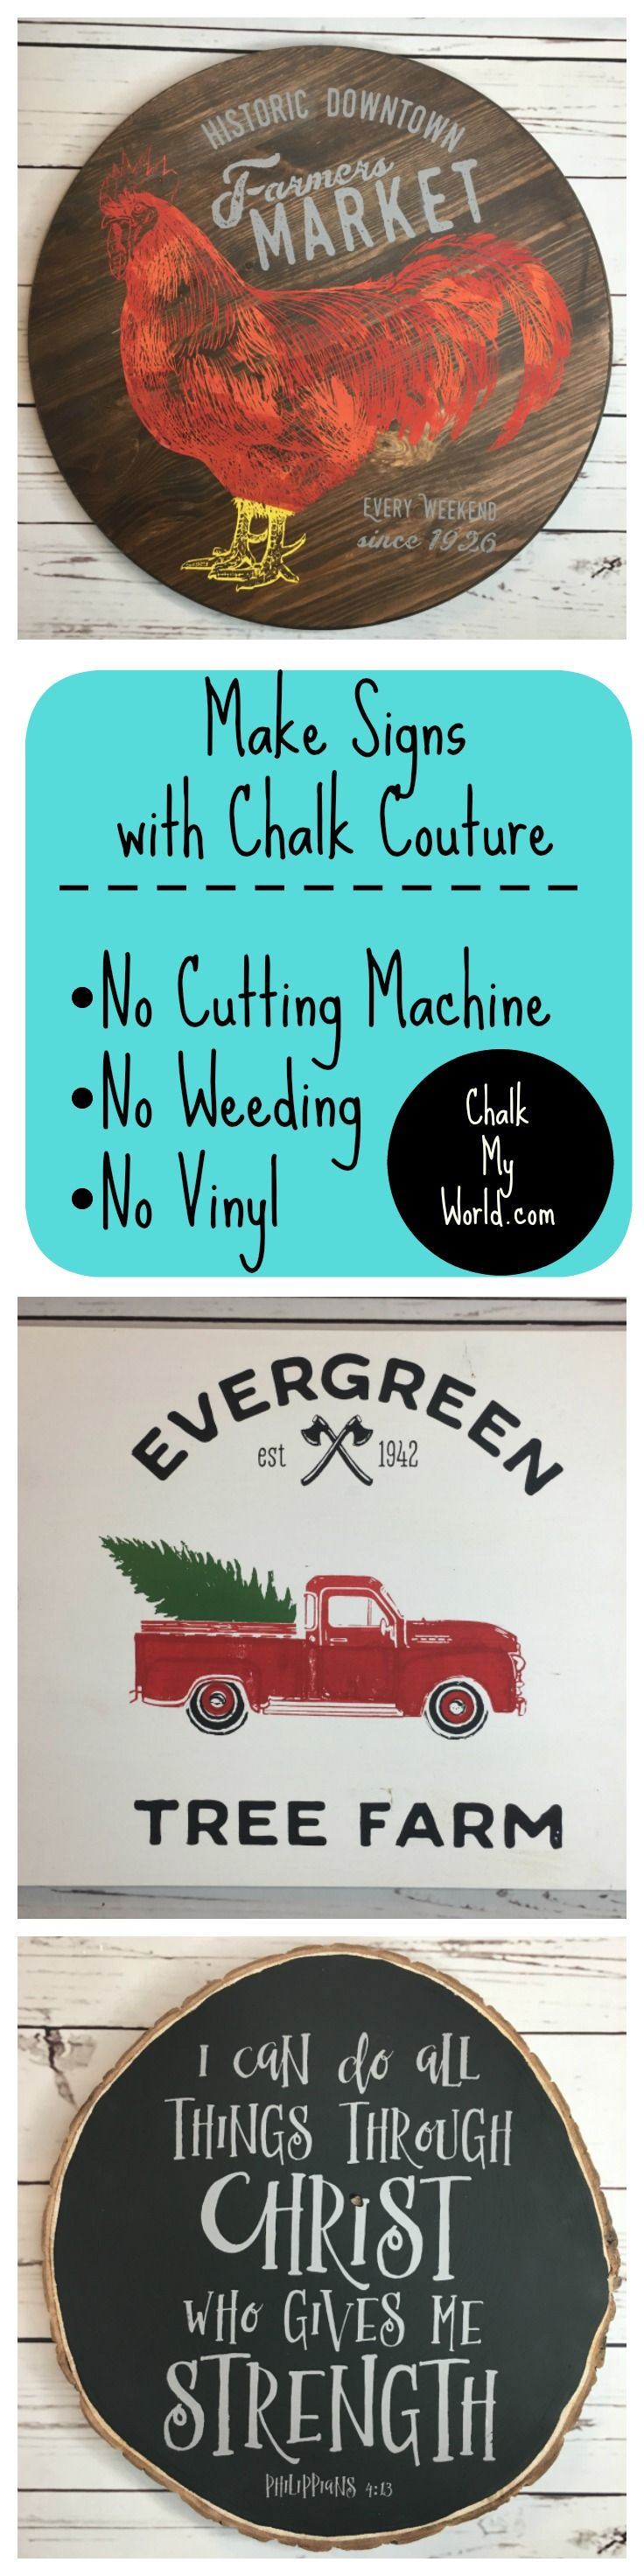 Make Handmade Signs with Chalk Couture reusable silk screen transfers. It's so easy. Anyone can do it. There's no cutting machine. No weeding. No vinyl. Place the sticky transfer, apply chalk paste, remove the excess and you're done.   Home Decor, DIY, Do It Yourself, Christmas, Fall, Thanksgiving, Cricut, Silhouette, Cameo, stencil, transfer tape, HGTV, Gallery Wall, Gift Idea, Ideas, How To, Make, Design, Create, Chalk Paint, Silkscreen, Speedball, Color, Stenciling